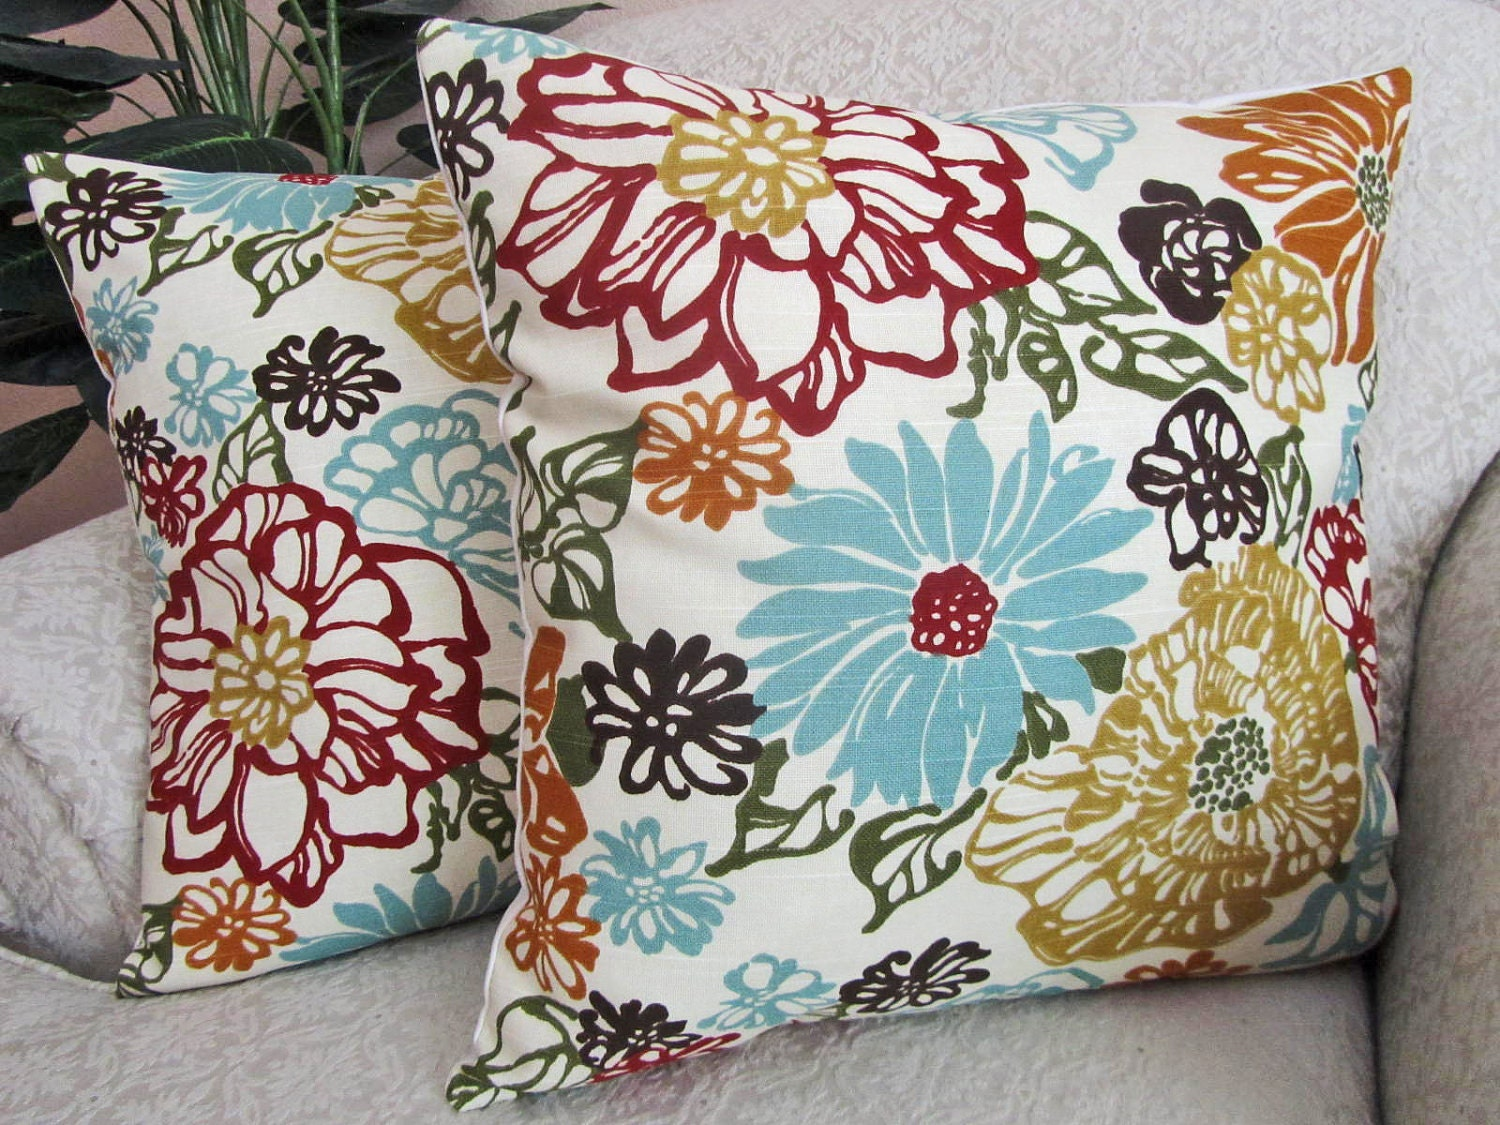 Decorative Pillows Flowers : Floral Throw Pillow Cover Decorative Pillow Robins Egg Blue